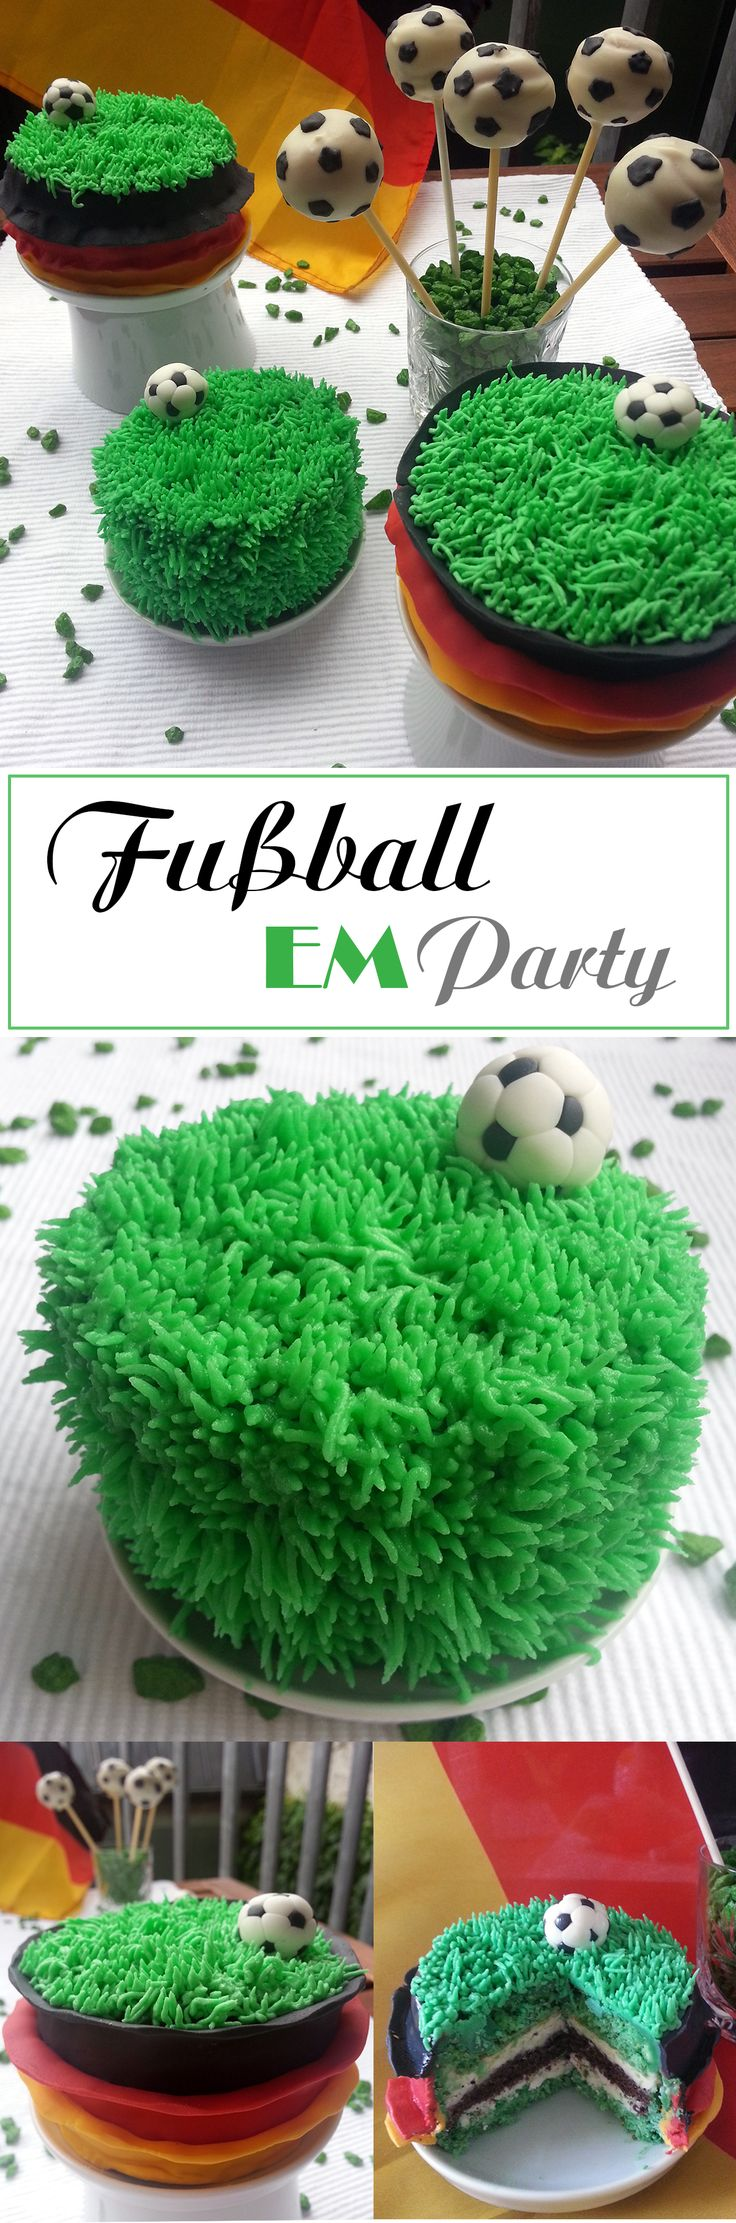 25 best ideas about soccer cake pops on pinterest football cake toppers soccer cupcakes and. Black Bedroom Furniture Sets. Home Design Ideas